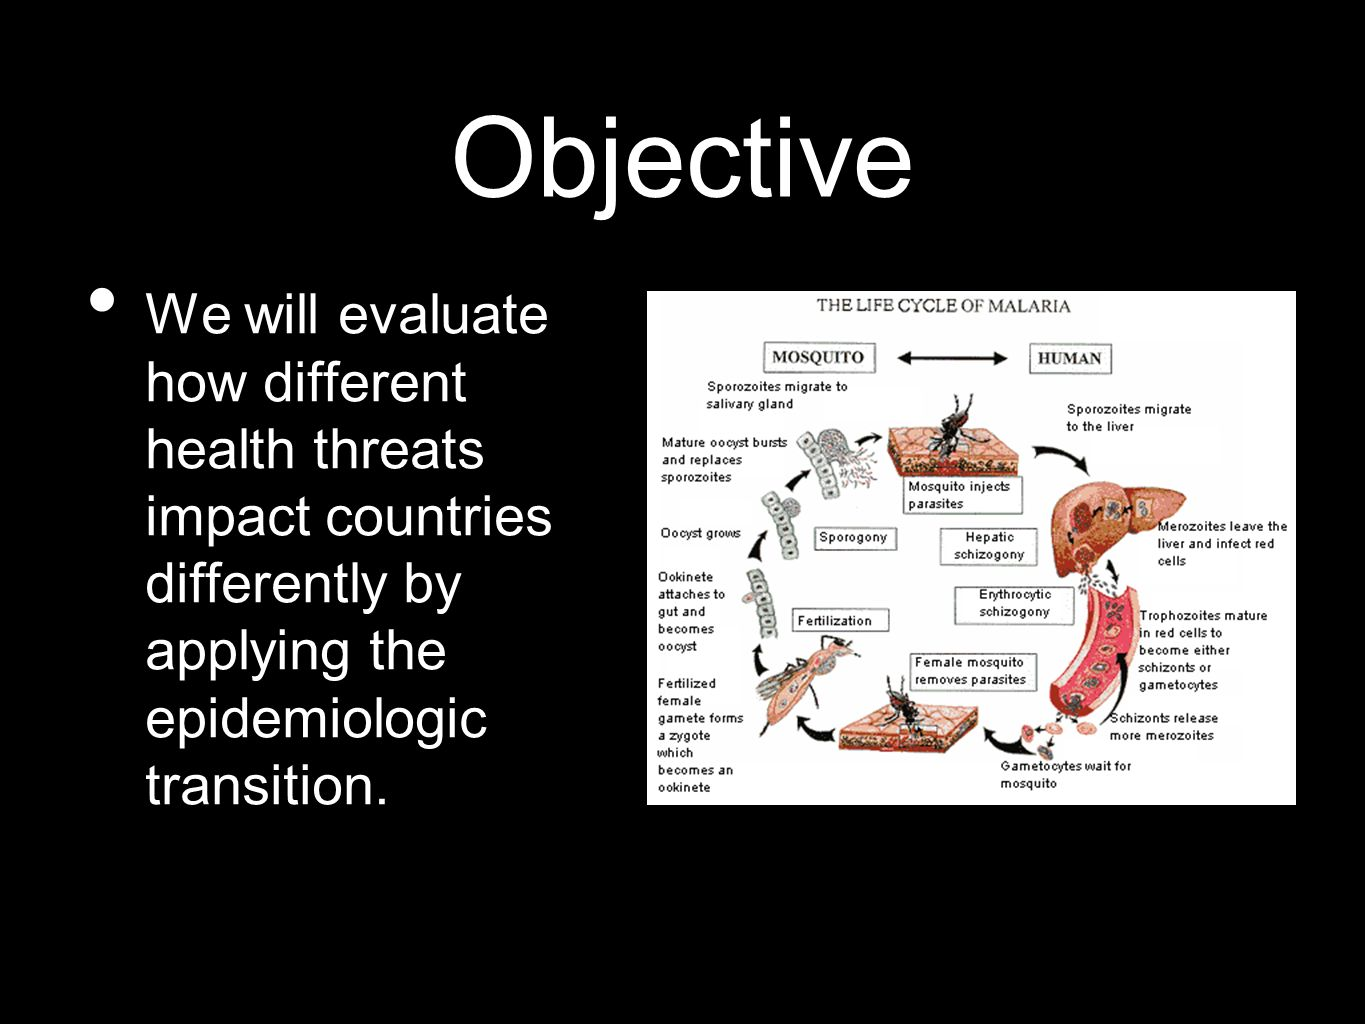 Objective We will evaluate how different health threats impact countries differently by applying the epidemiologic transition.